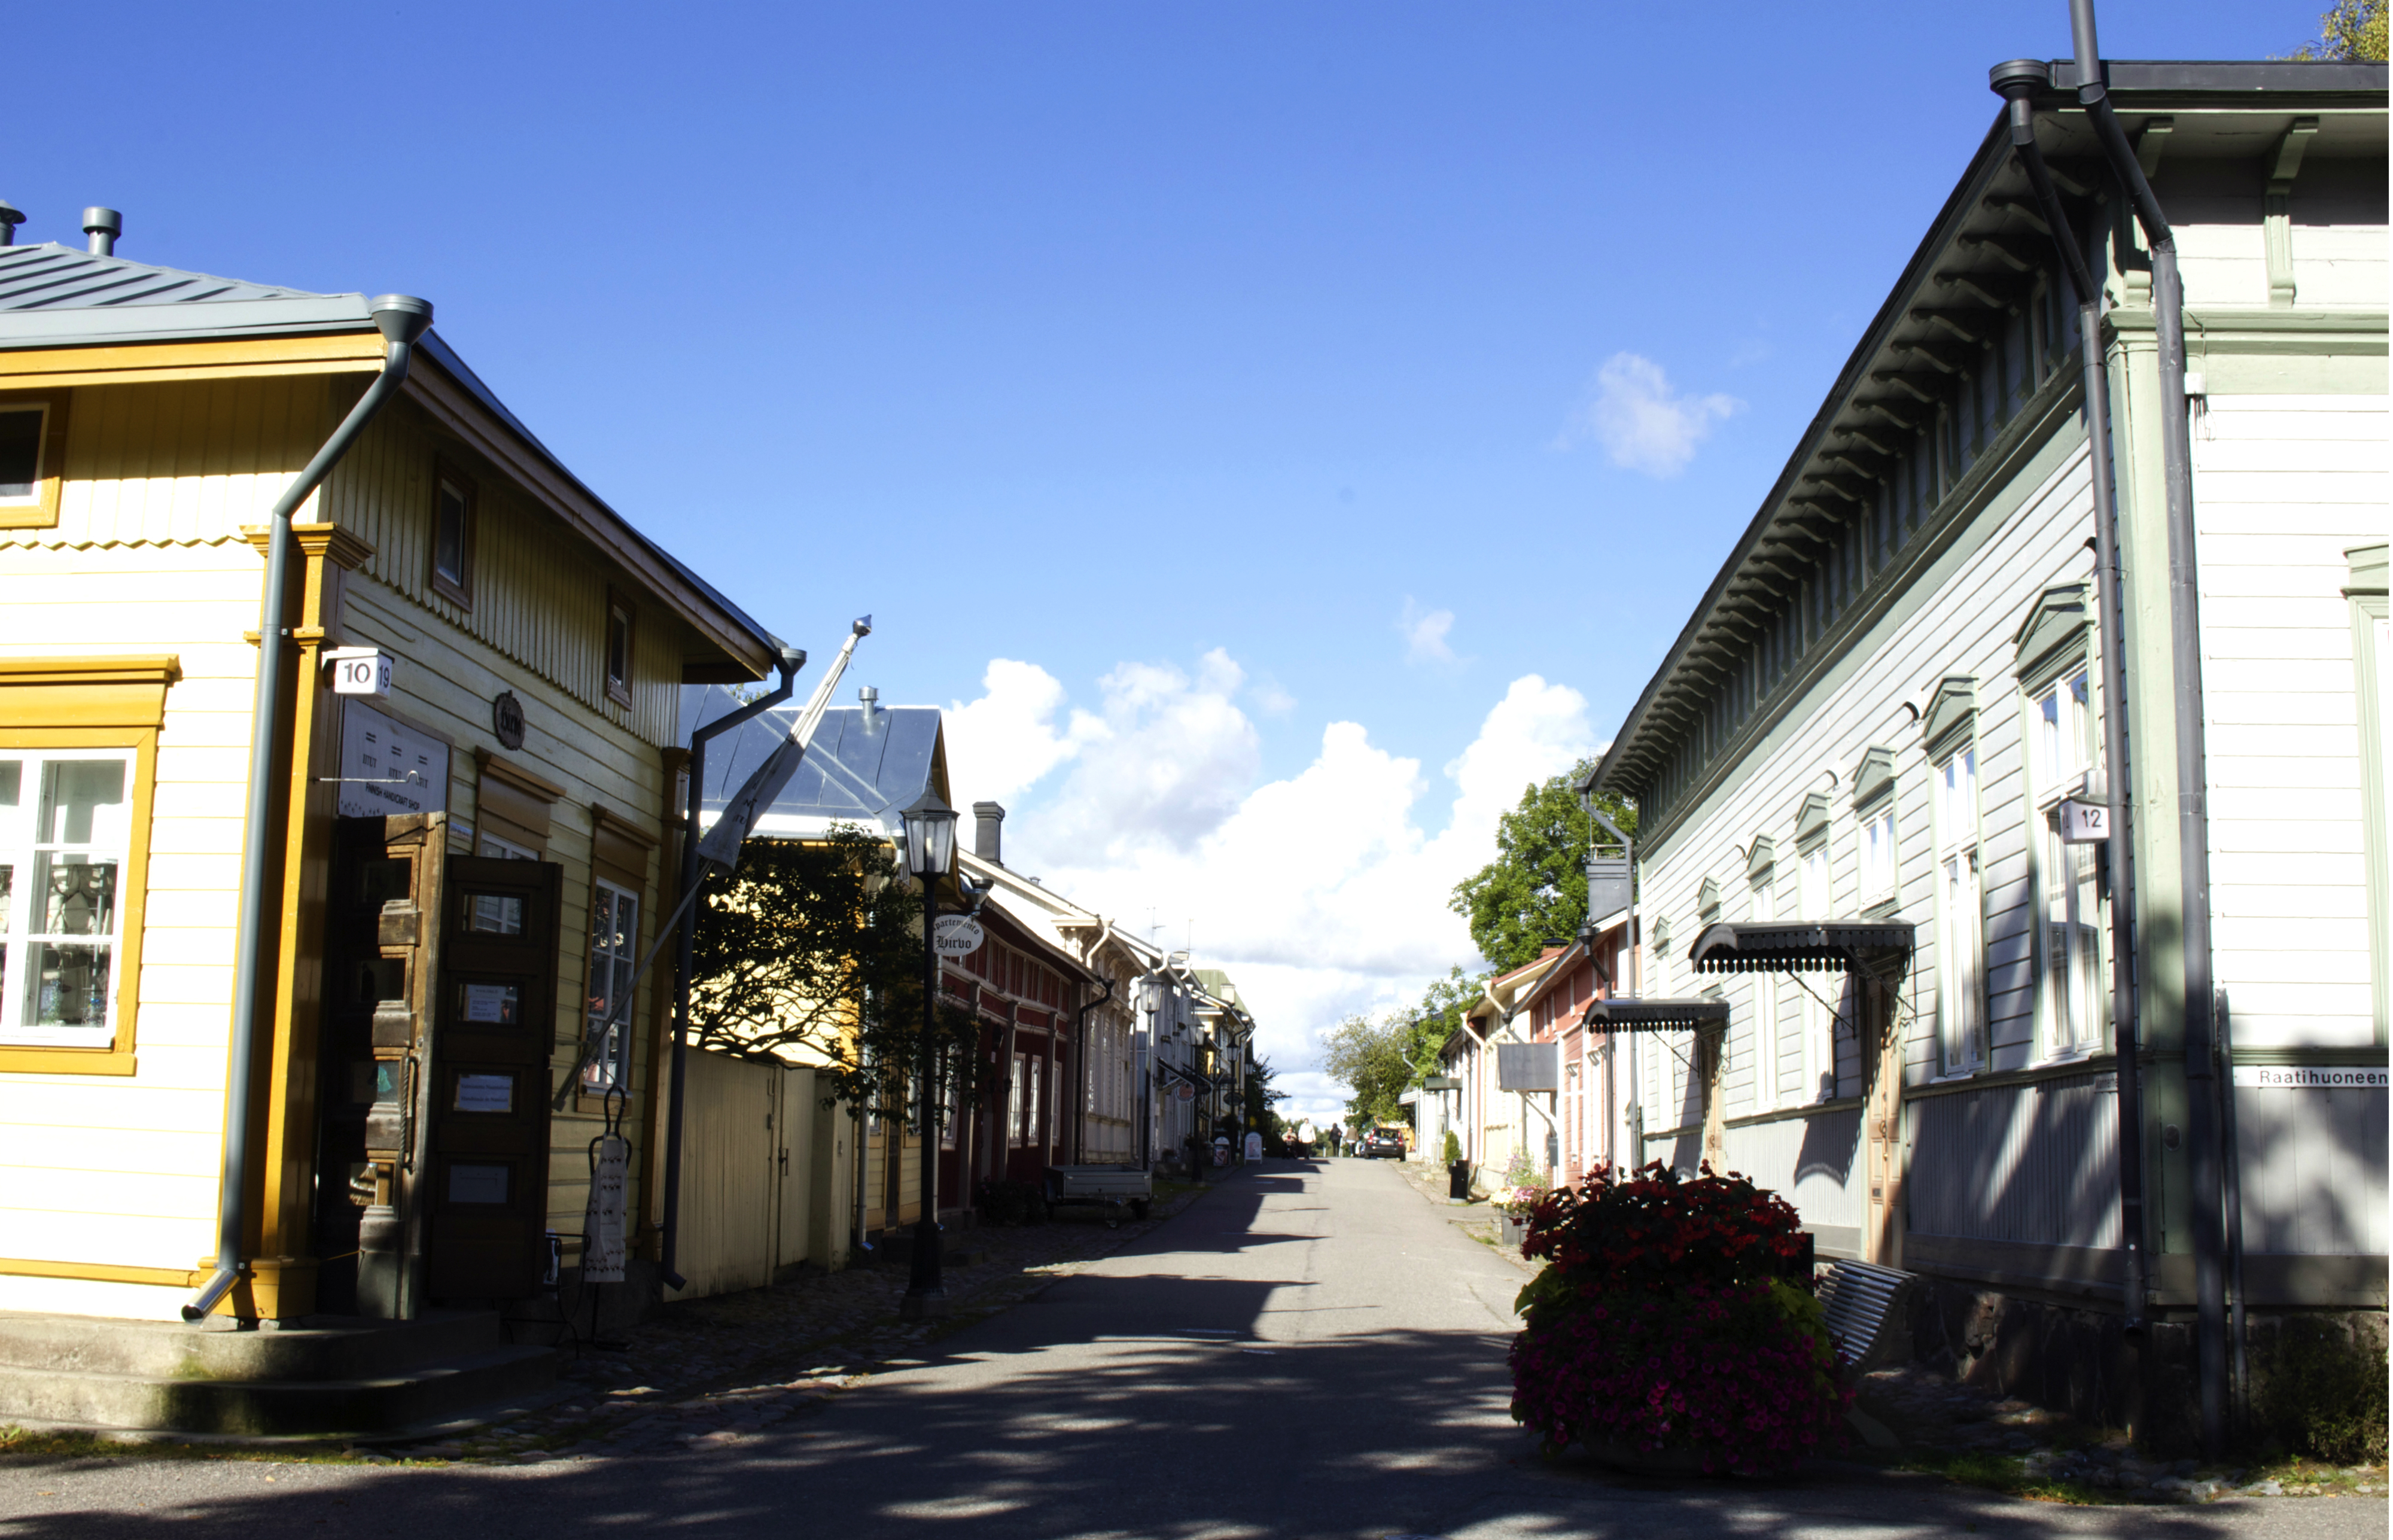 Old Town main street in Naantali.